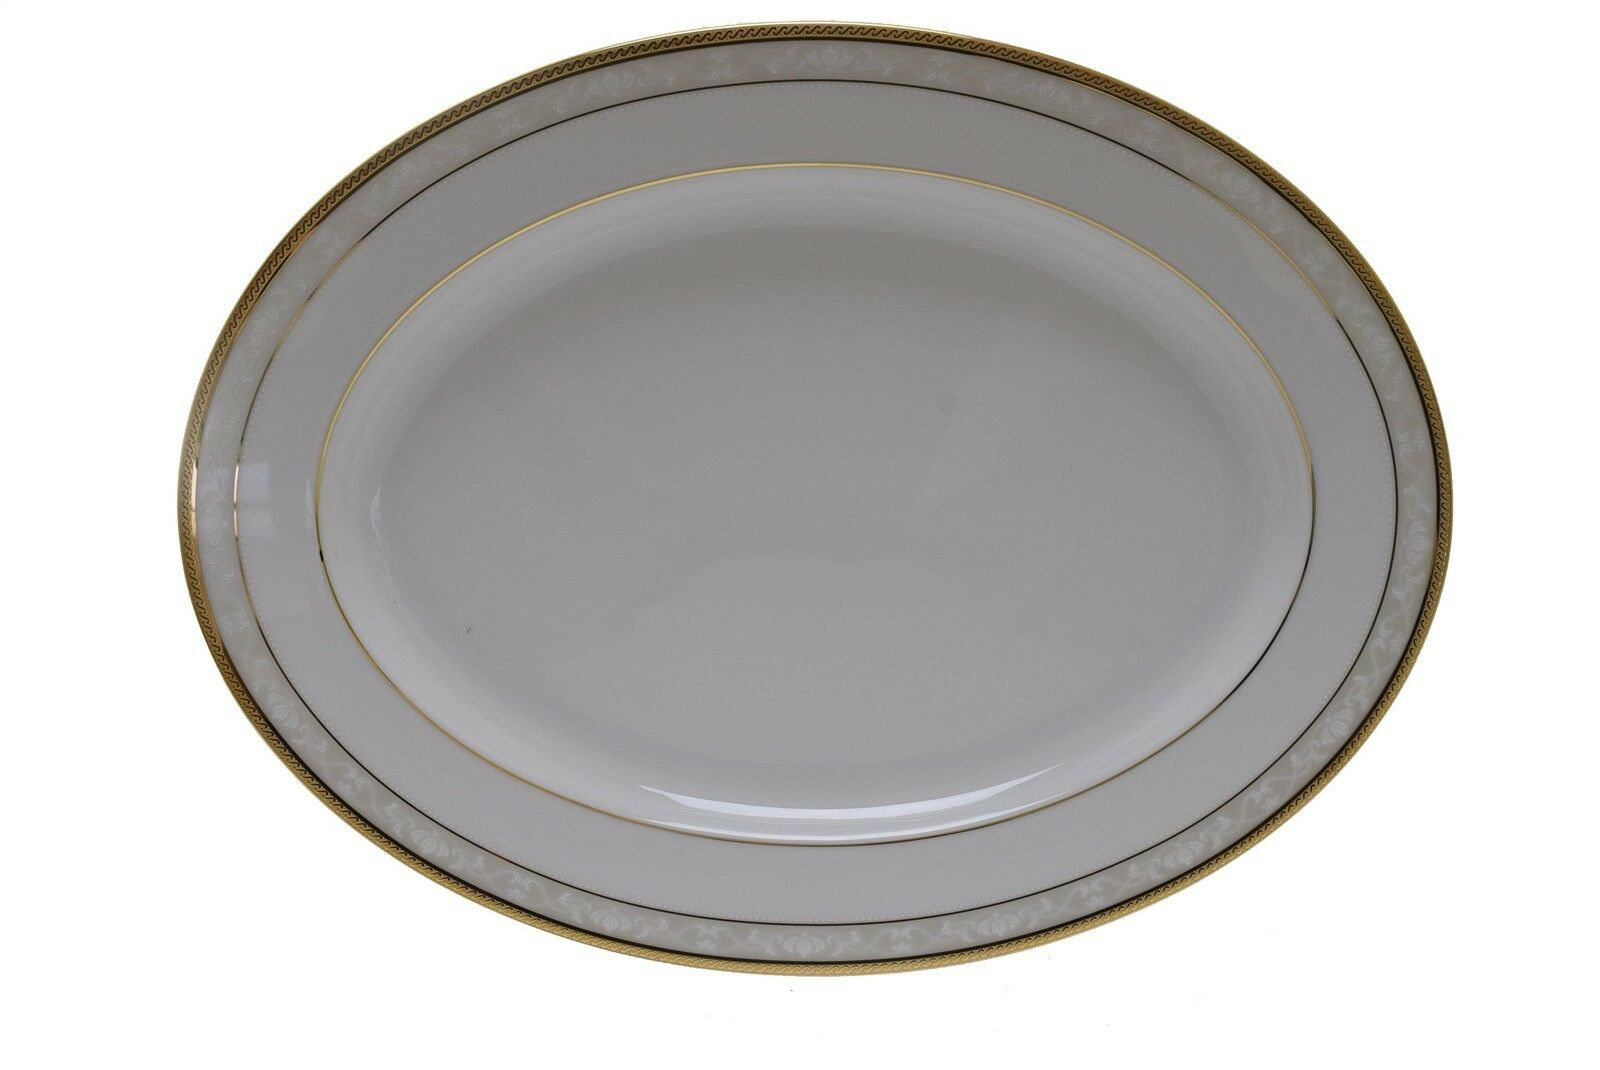 Noritake 4335 Hampshire Gold 13 5 8  x 10 1 4  Platter - New